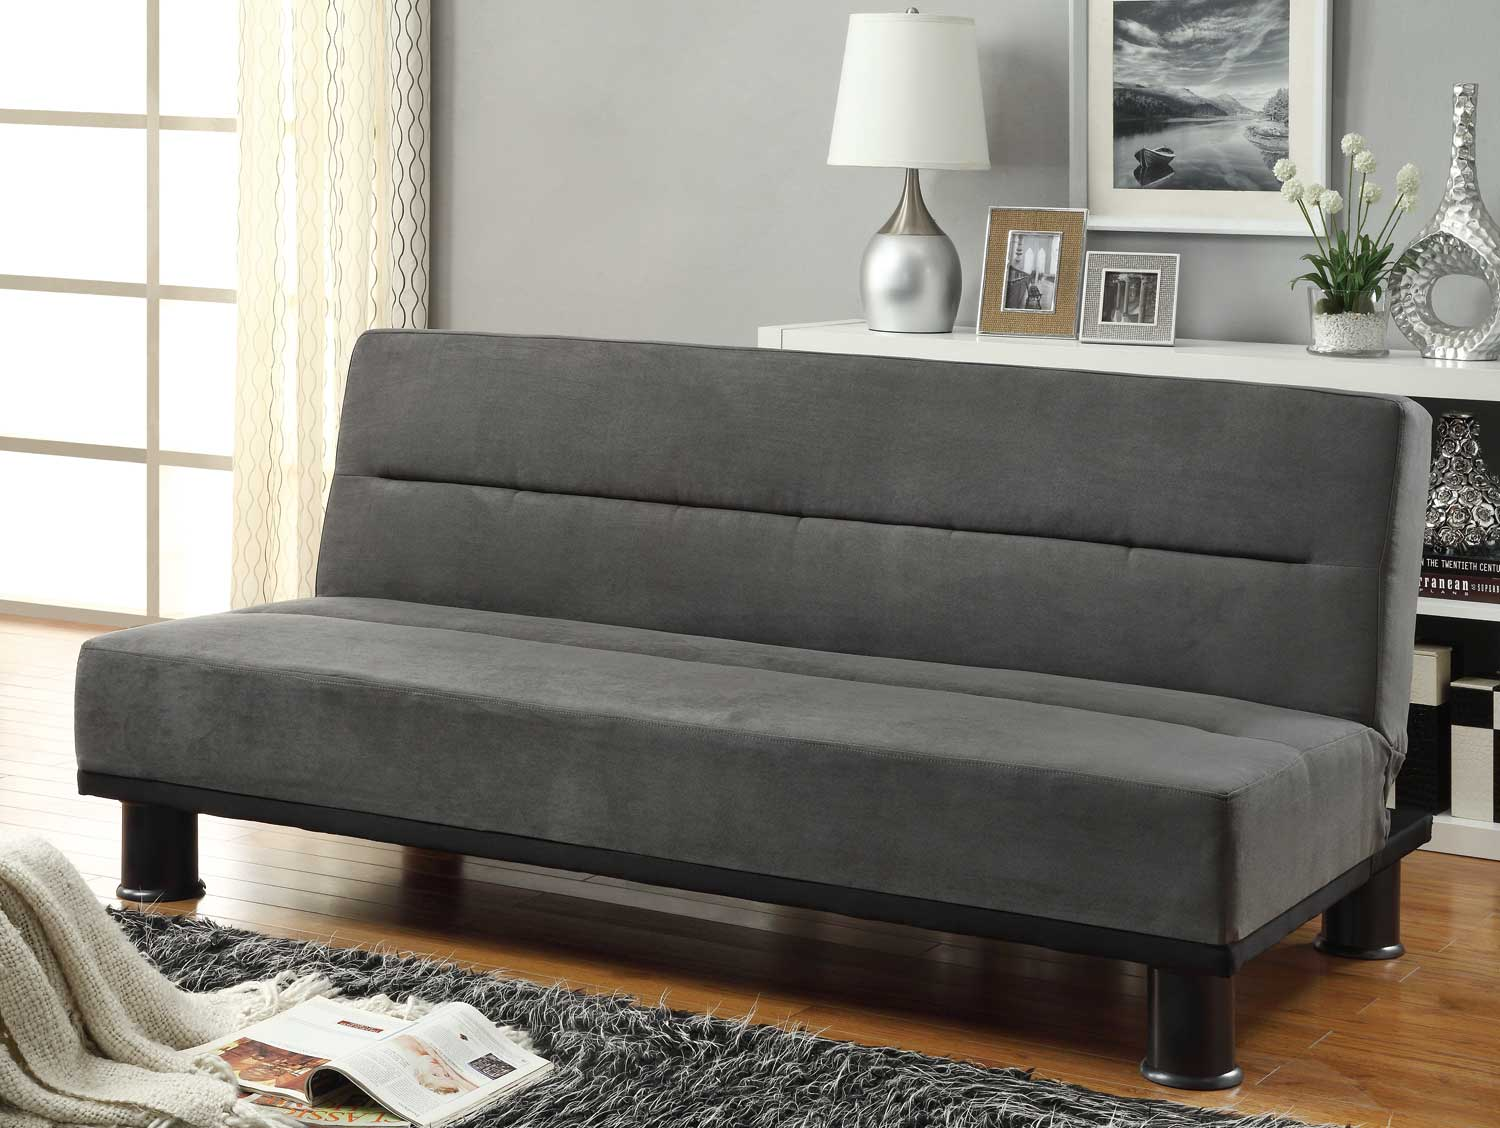 Homelegance Callie Click Clack Sofa Bed Graphite Grey Microfiber